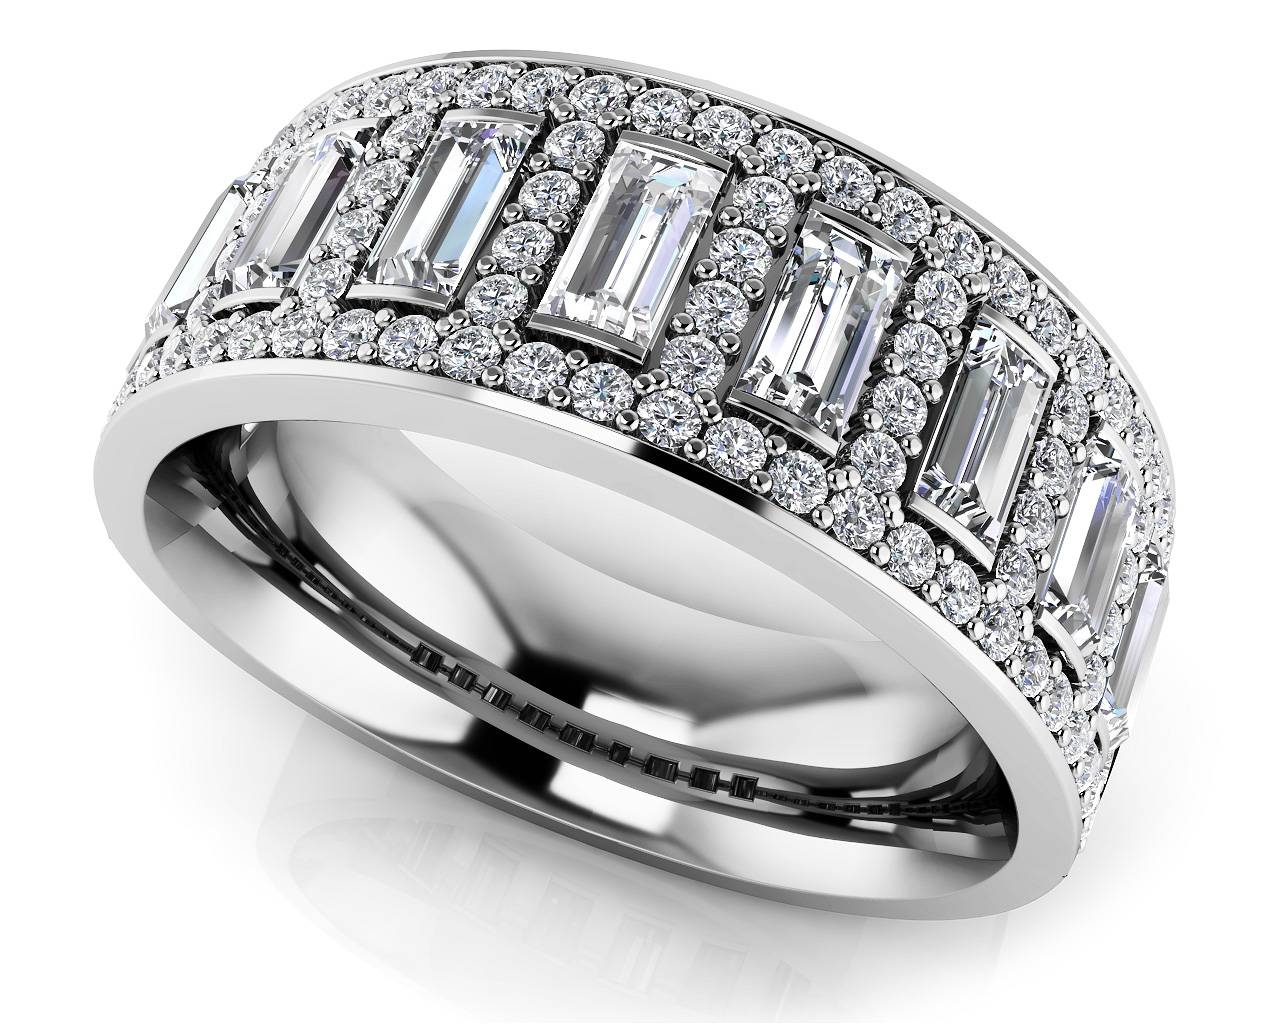 Design Your Own Diamond Anniversary Ring & Eternity Ring Within Recent Baguette Diamond Anniversary Rings (View 6 of 25)